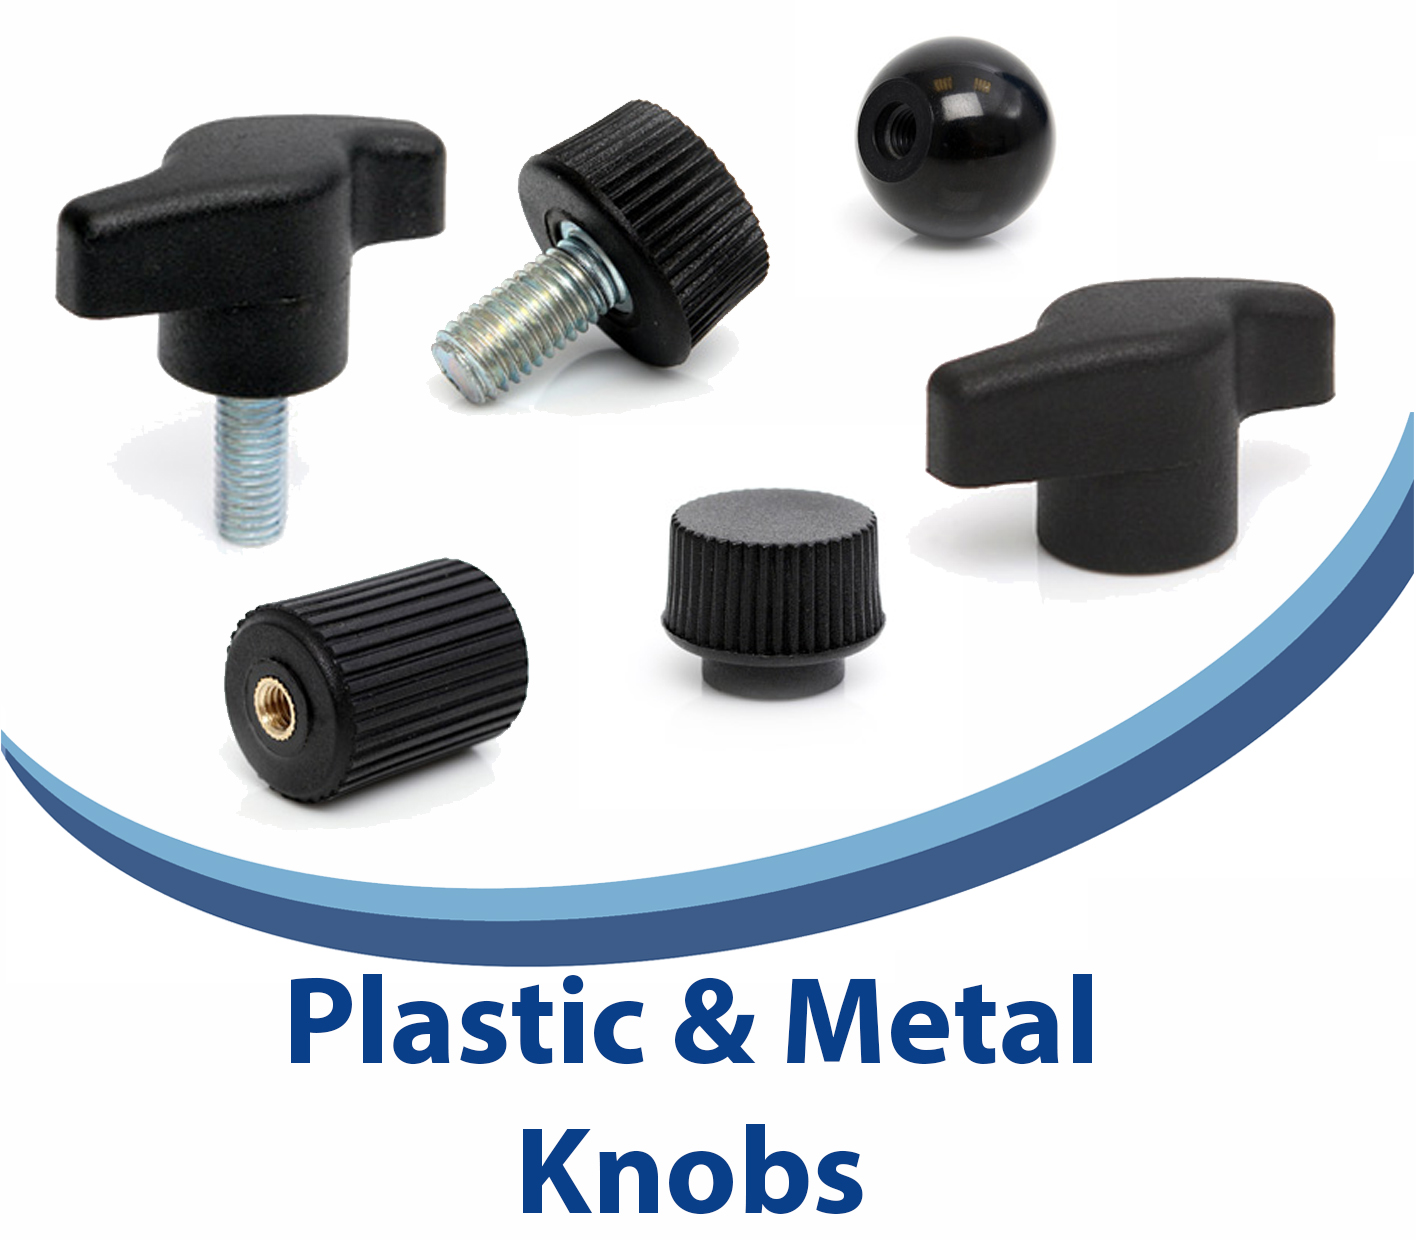 Plastic & Metal Knobs